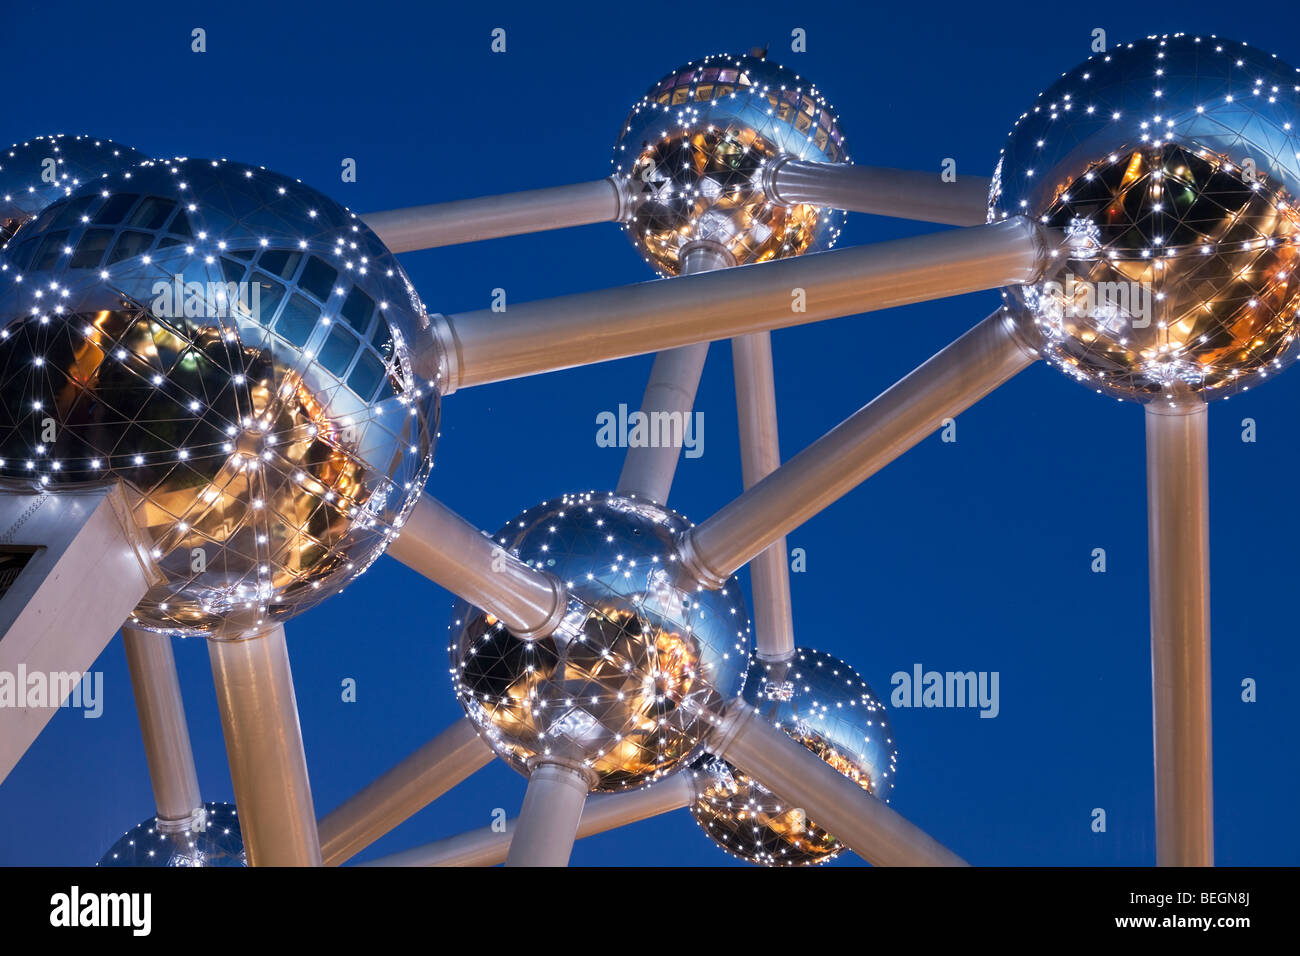 Detail of the Atomium in Heysel lit up at night. - Stock Image